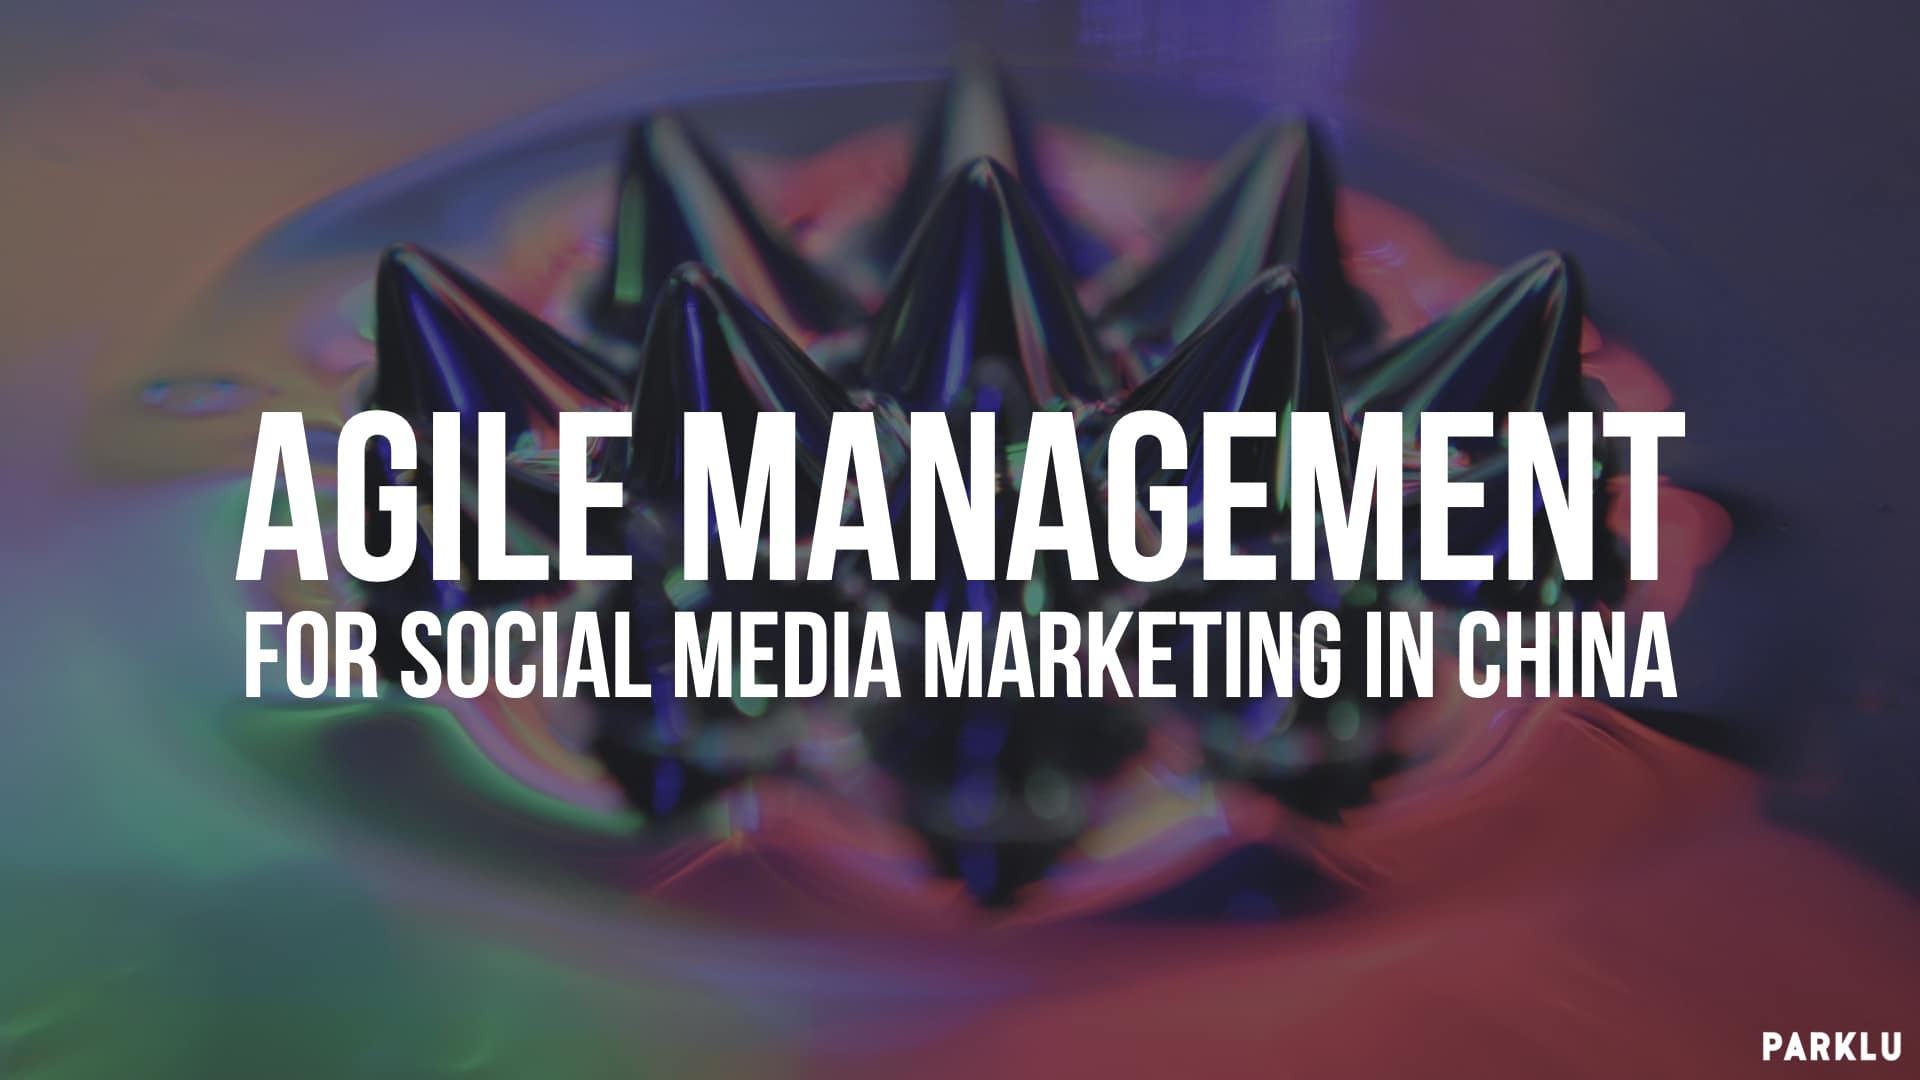 Agile Management- for social media marketing in China